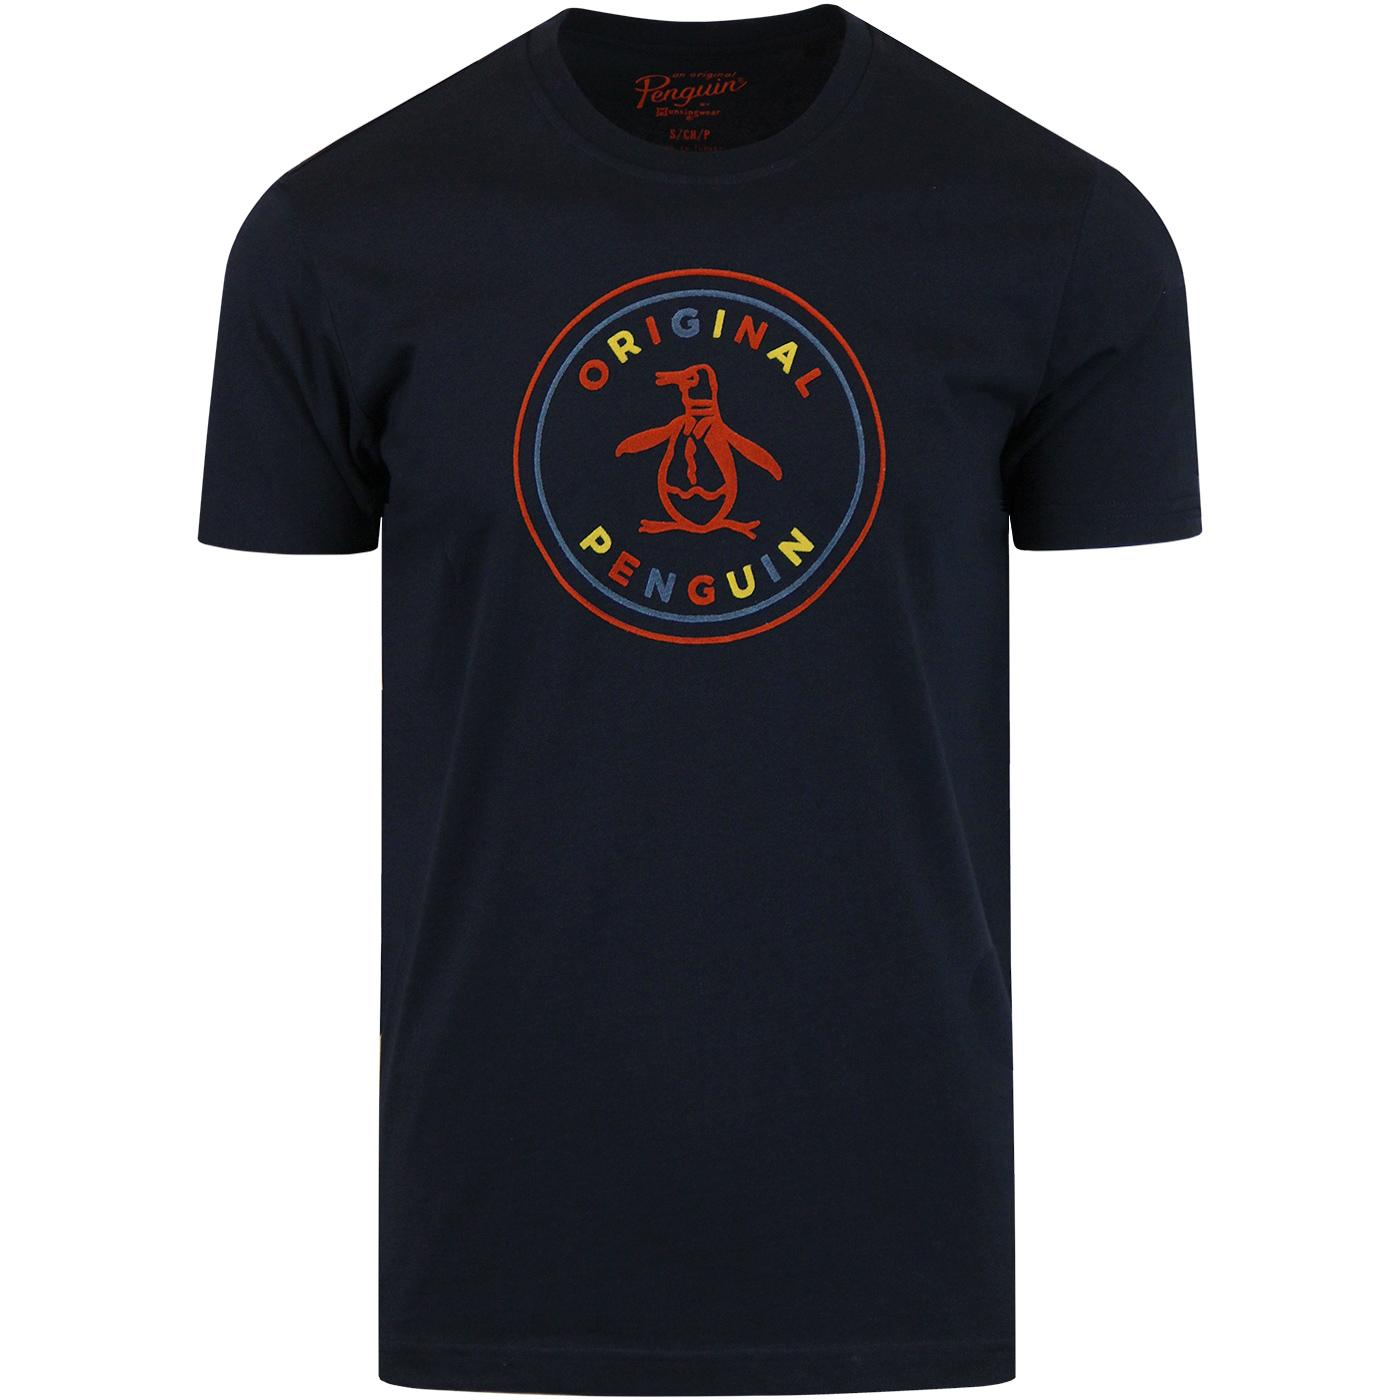 ORIGINAL PENGUIN Mens Retro Flock Stamp Logo Tee